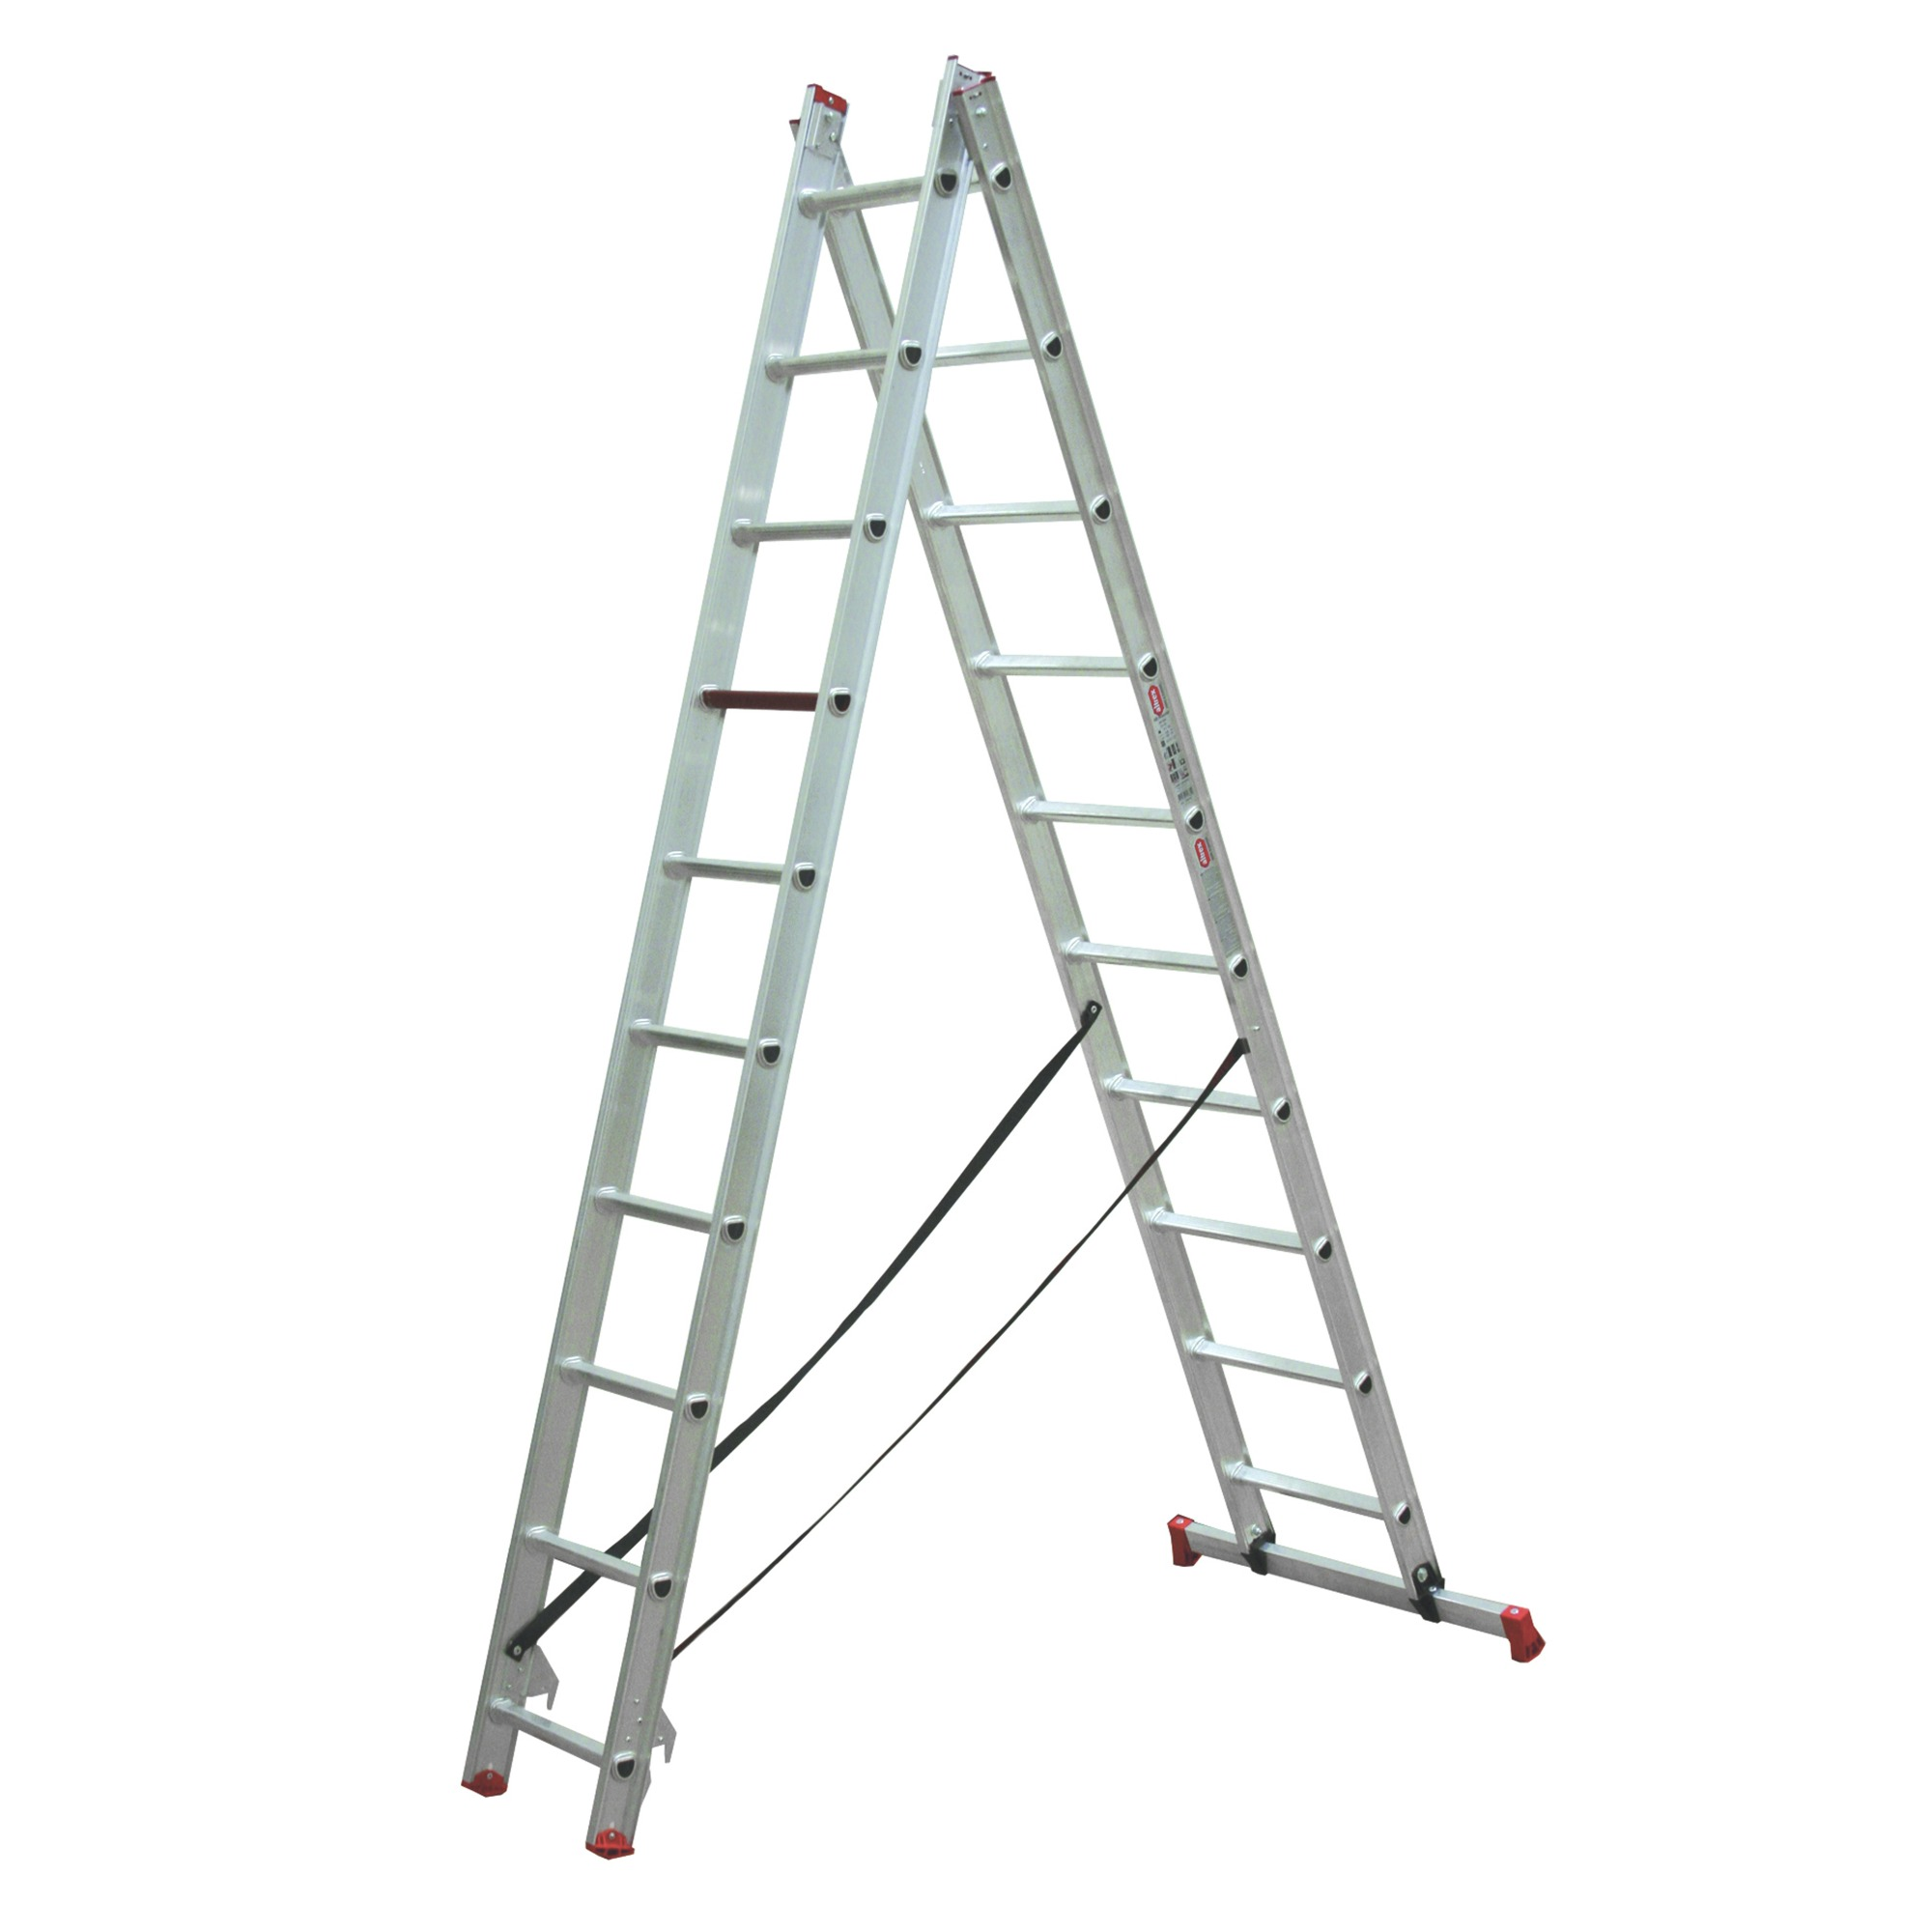 Altrex Ladder Altrex Reformladder Allround 2x10 Treden | Ladders